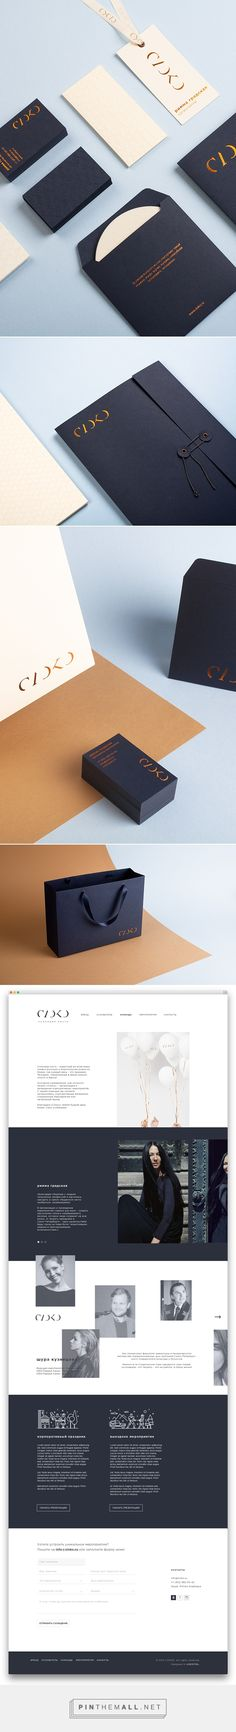 Sloko. on Behance... - a grouped images picture - Pin Them All